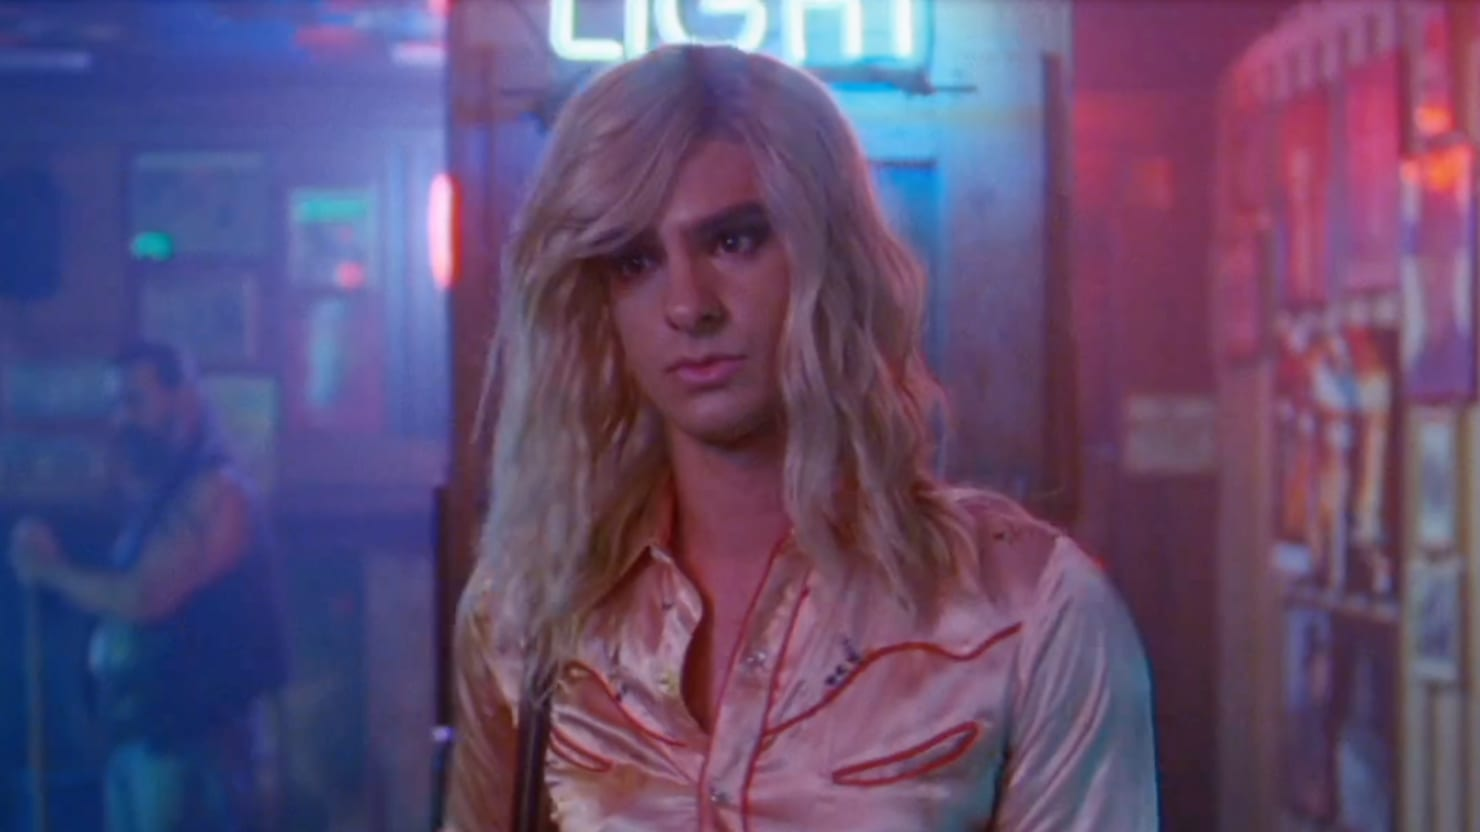 Andrew Garfield in 'We Exist' and More Celebrities in Music Videos